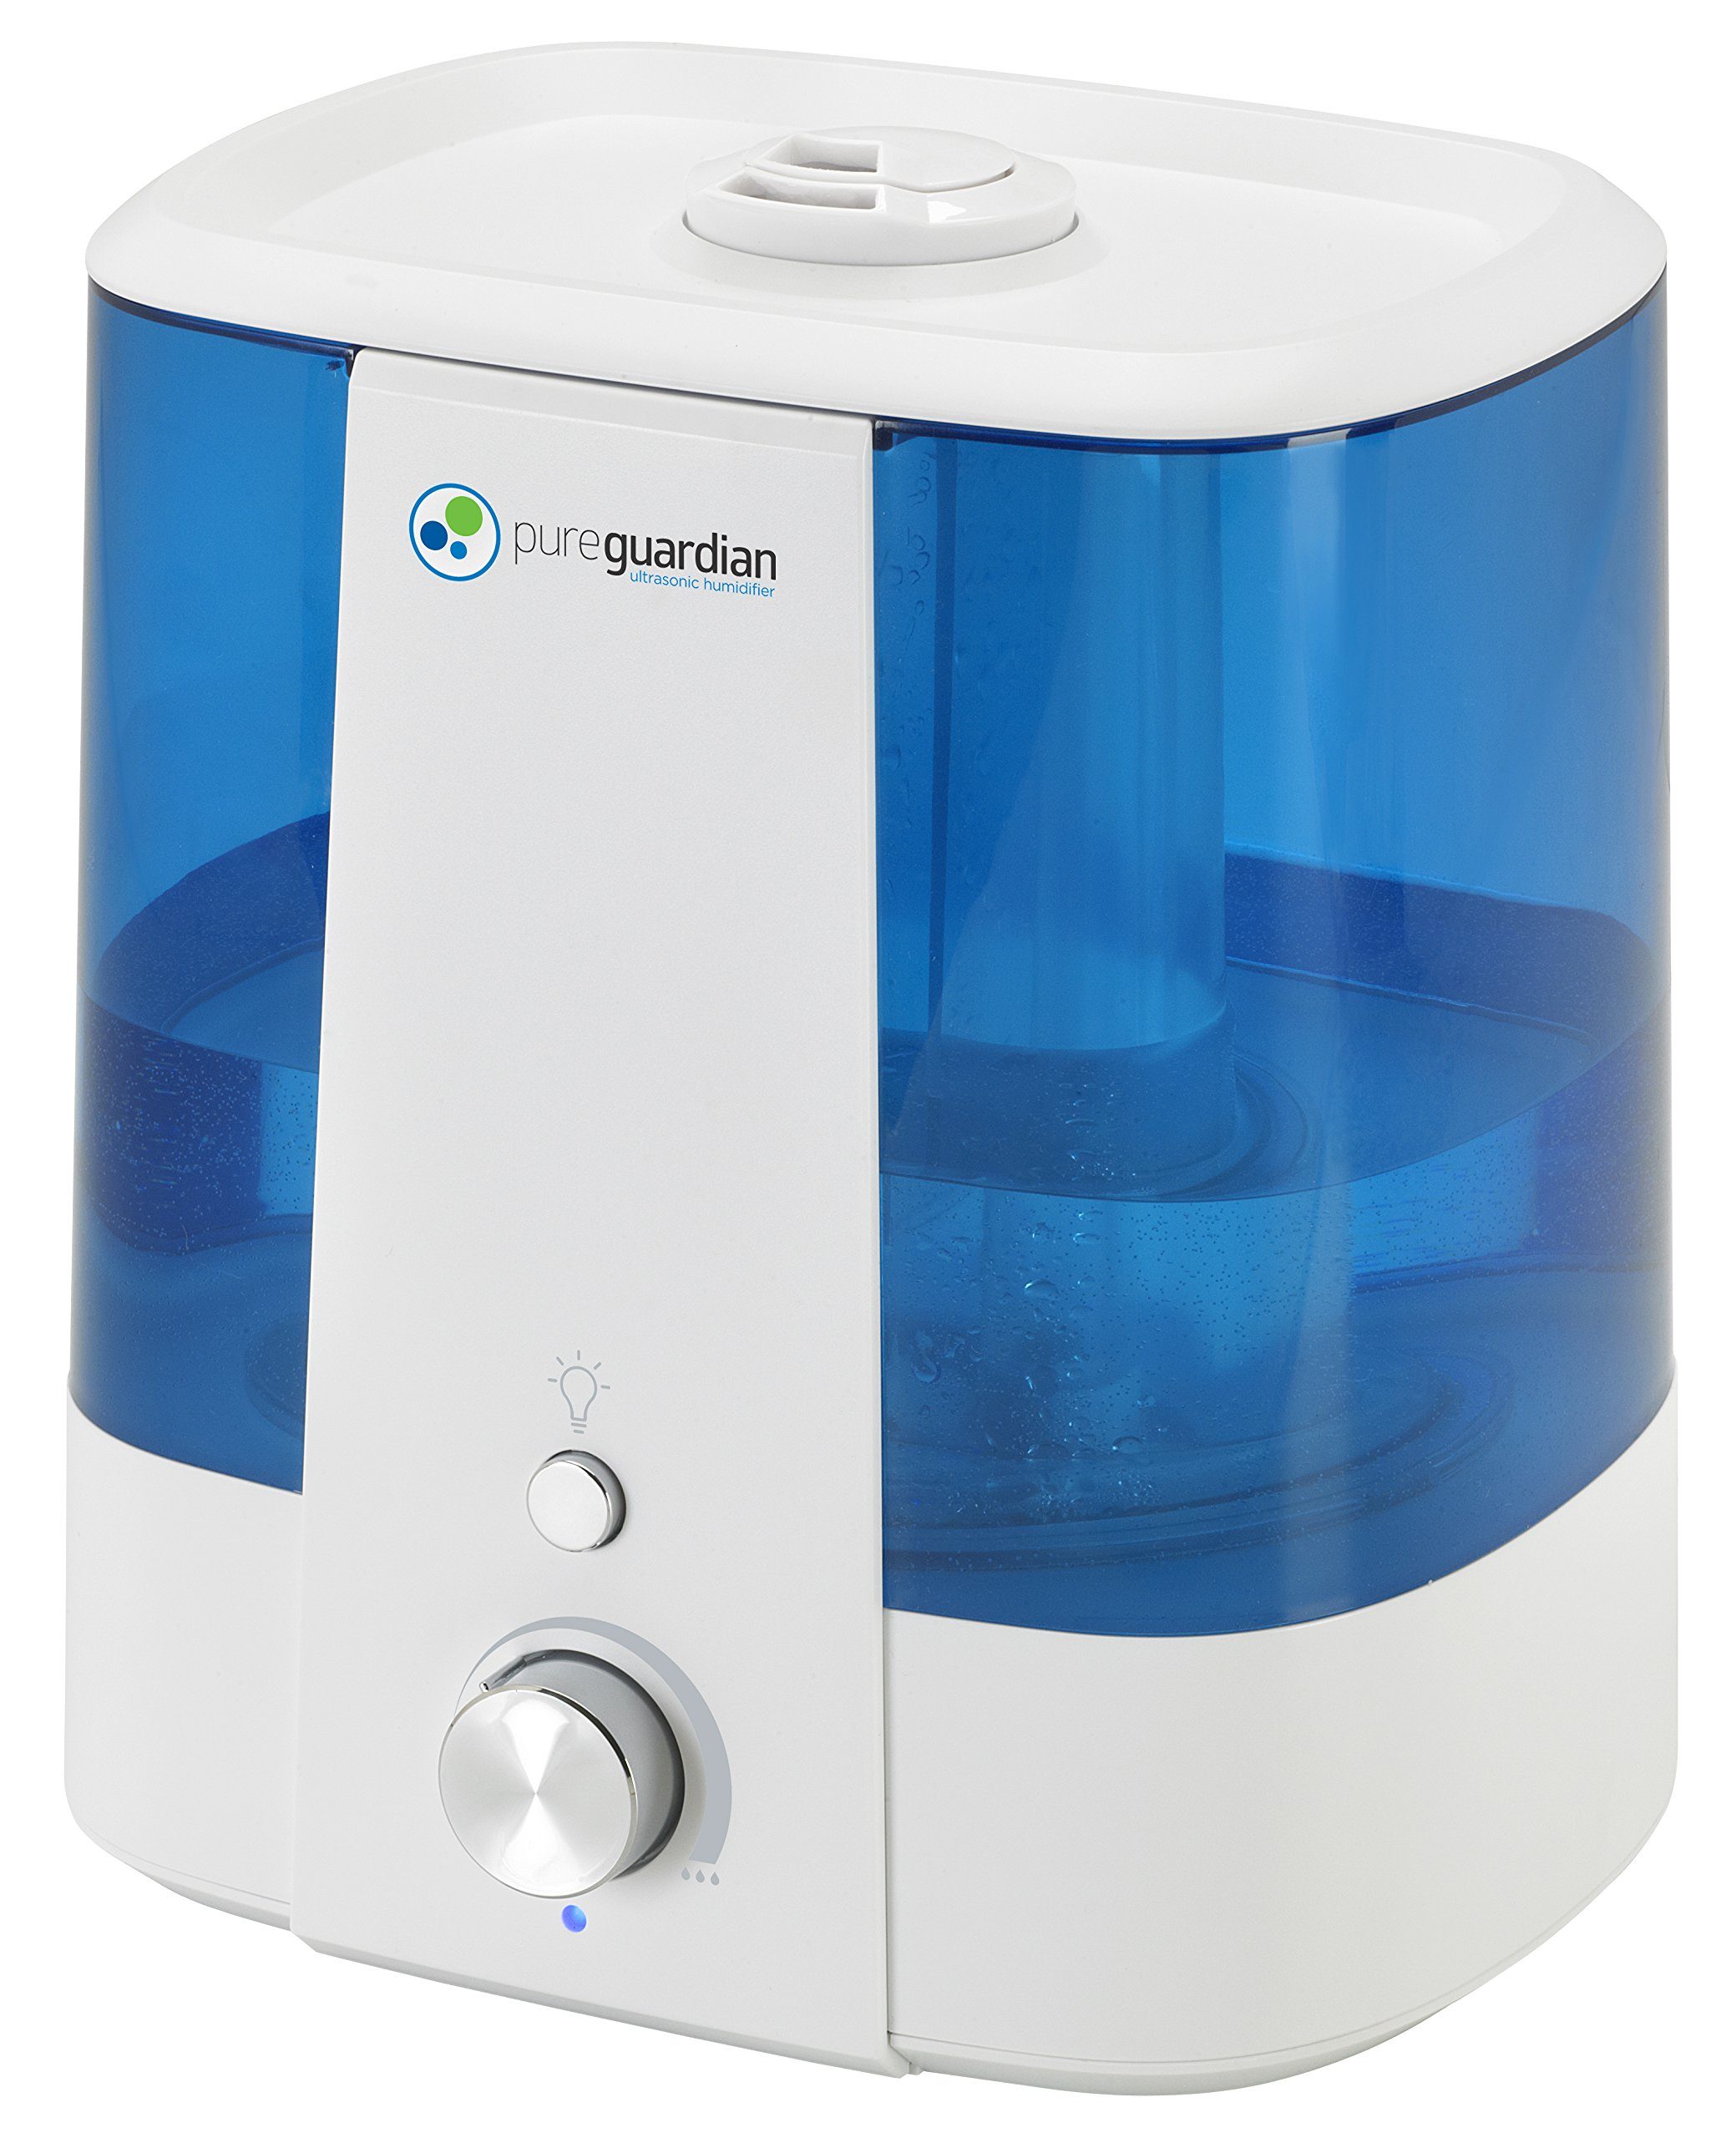 PureGuardian 6.4L Output per Day Top Fill  Ultrasonic Cool Mist Humidifier with Aroma Tray for Essential Oils, 90-Hour Personal Humidifier, 1.5 Gallon Room Humidifier, Pure Guardian H1175WCA